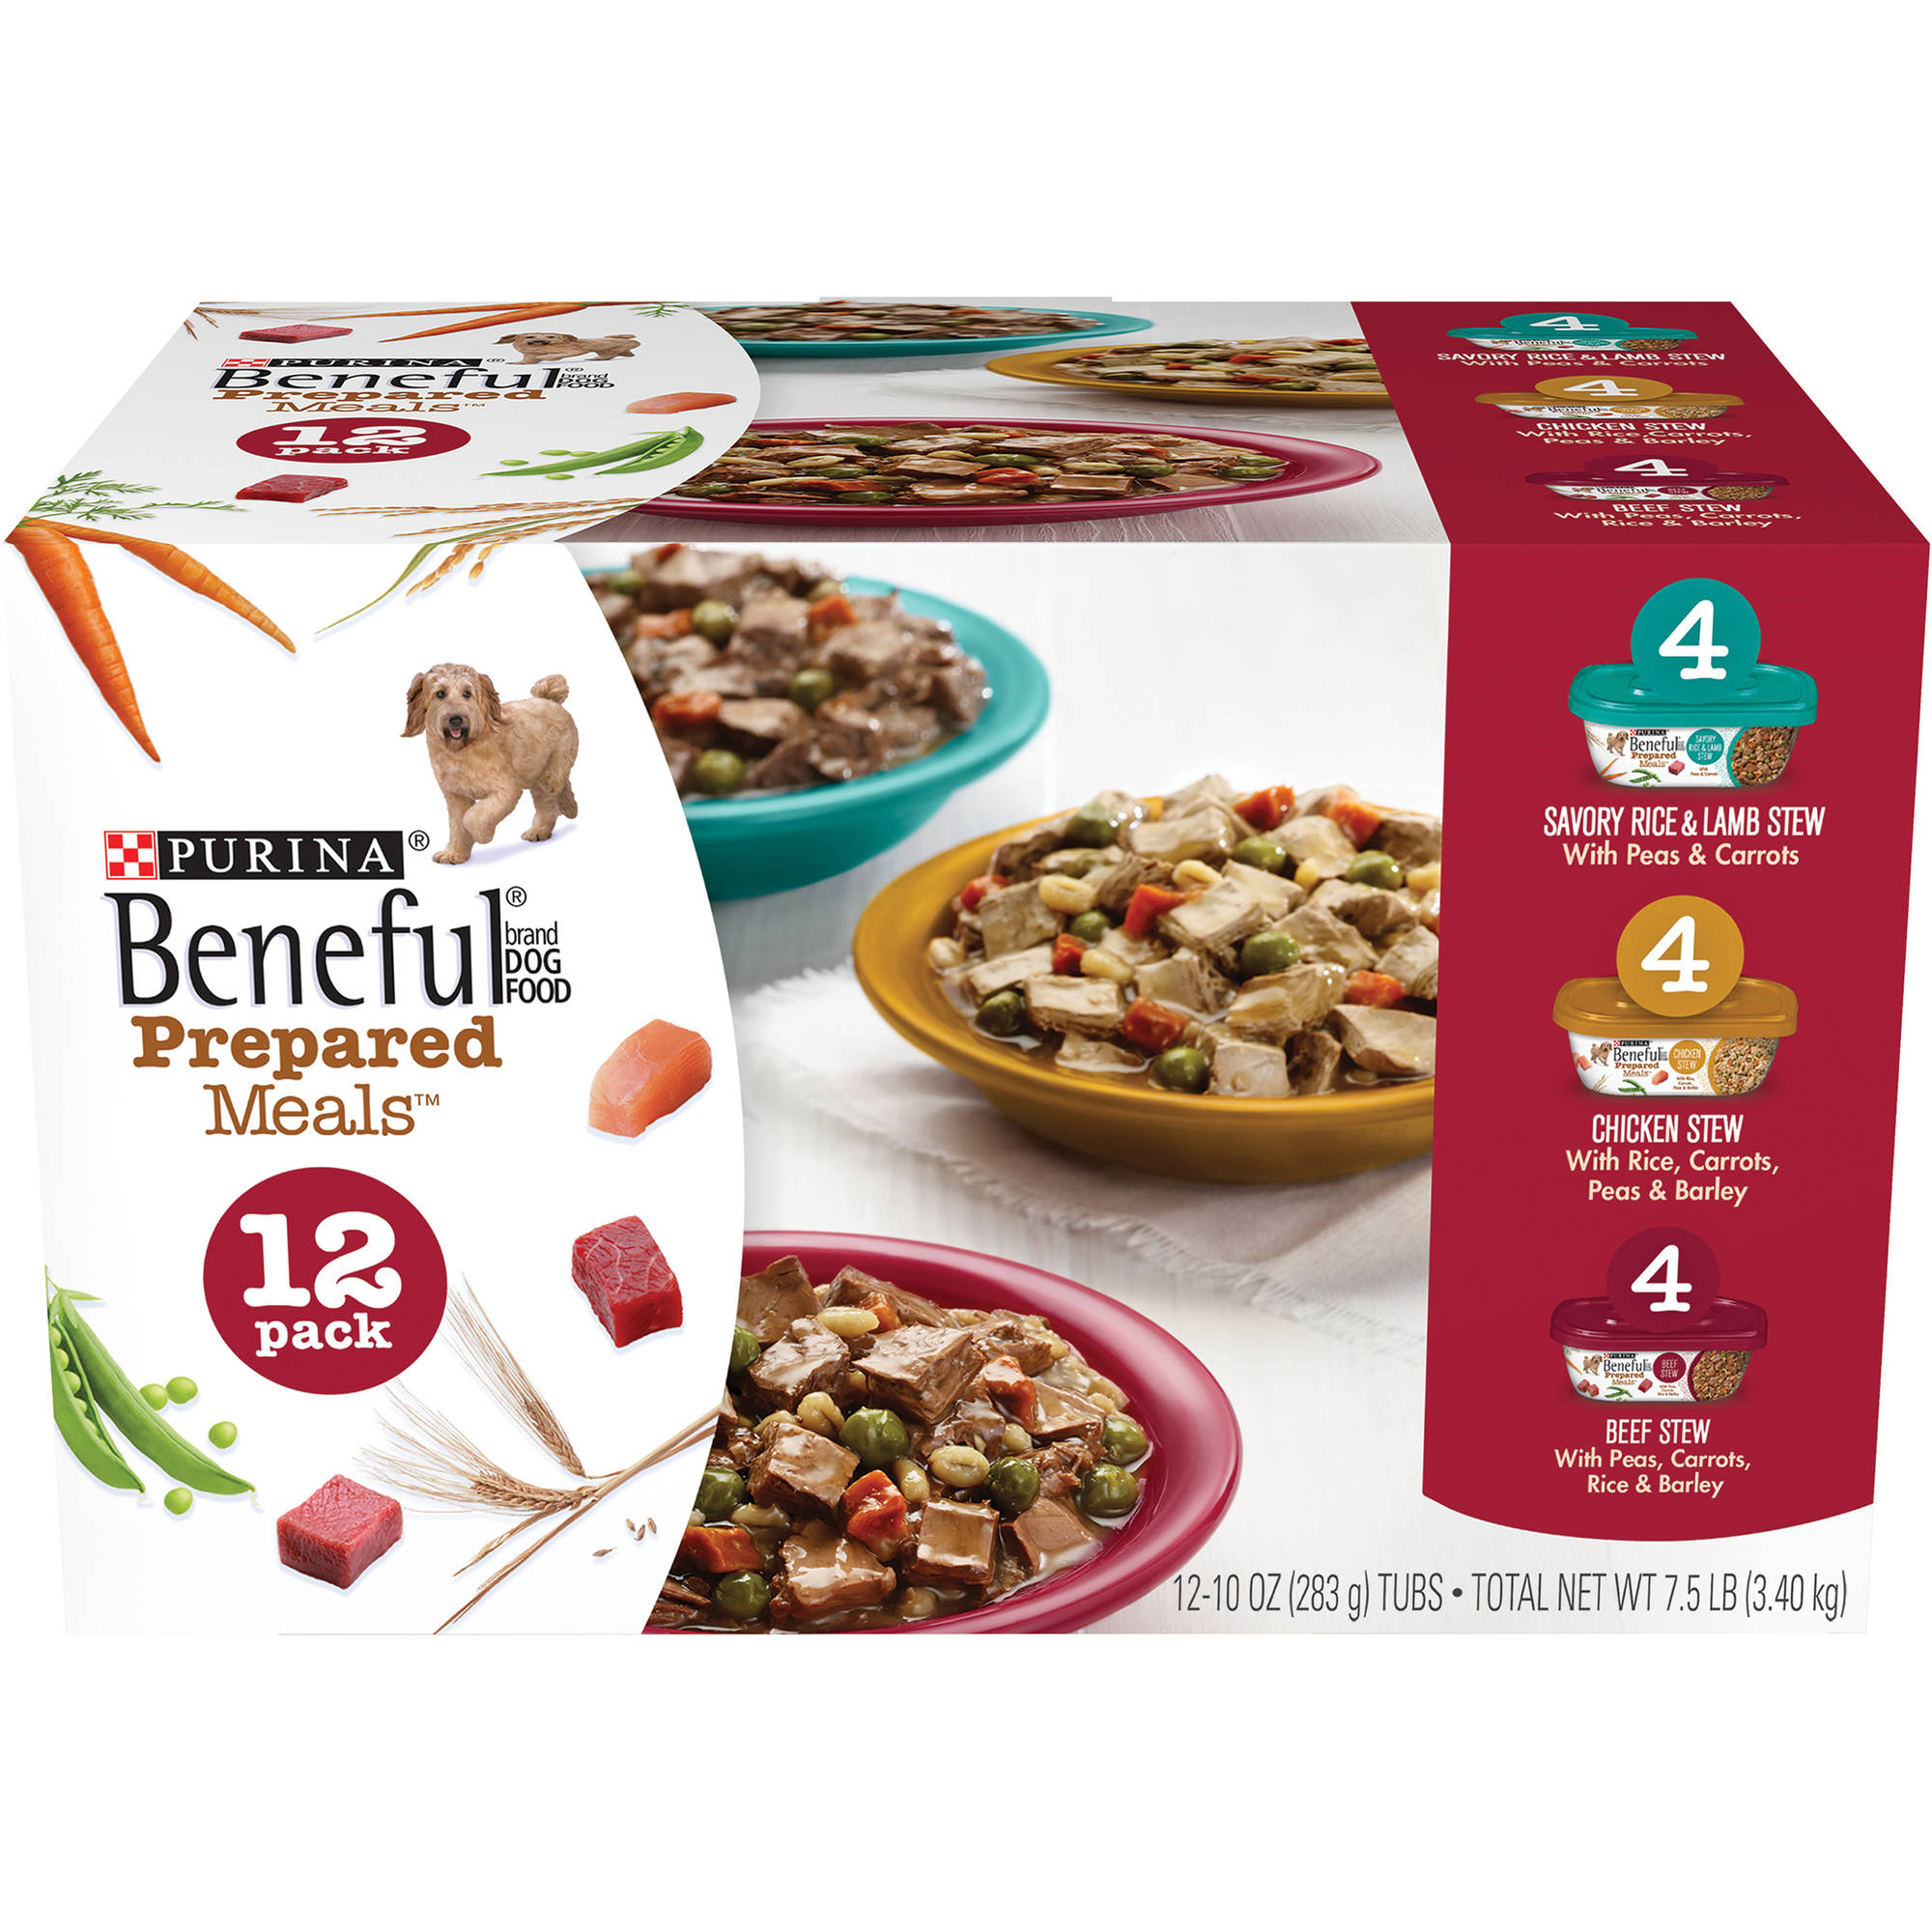 Purina Beneful Prepared Meals Dog Food Variety Pack 12-10 oz. Tubs